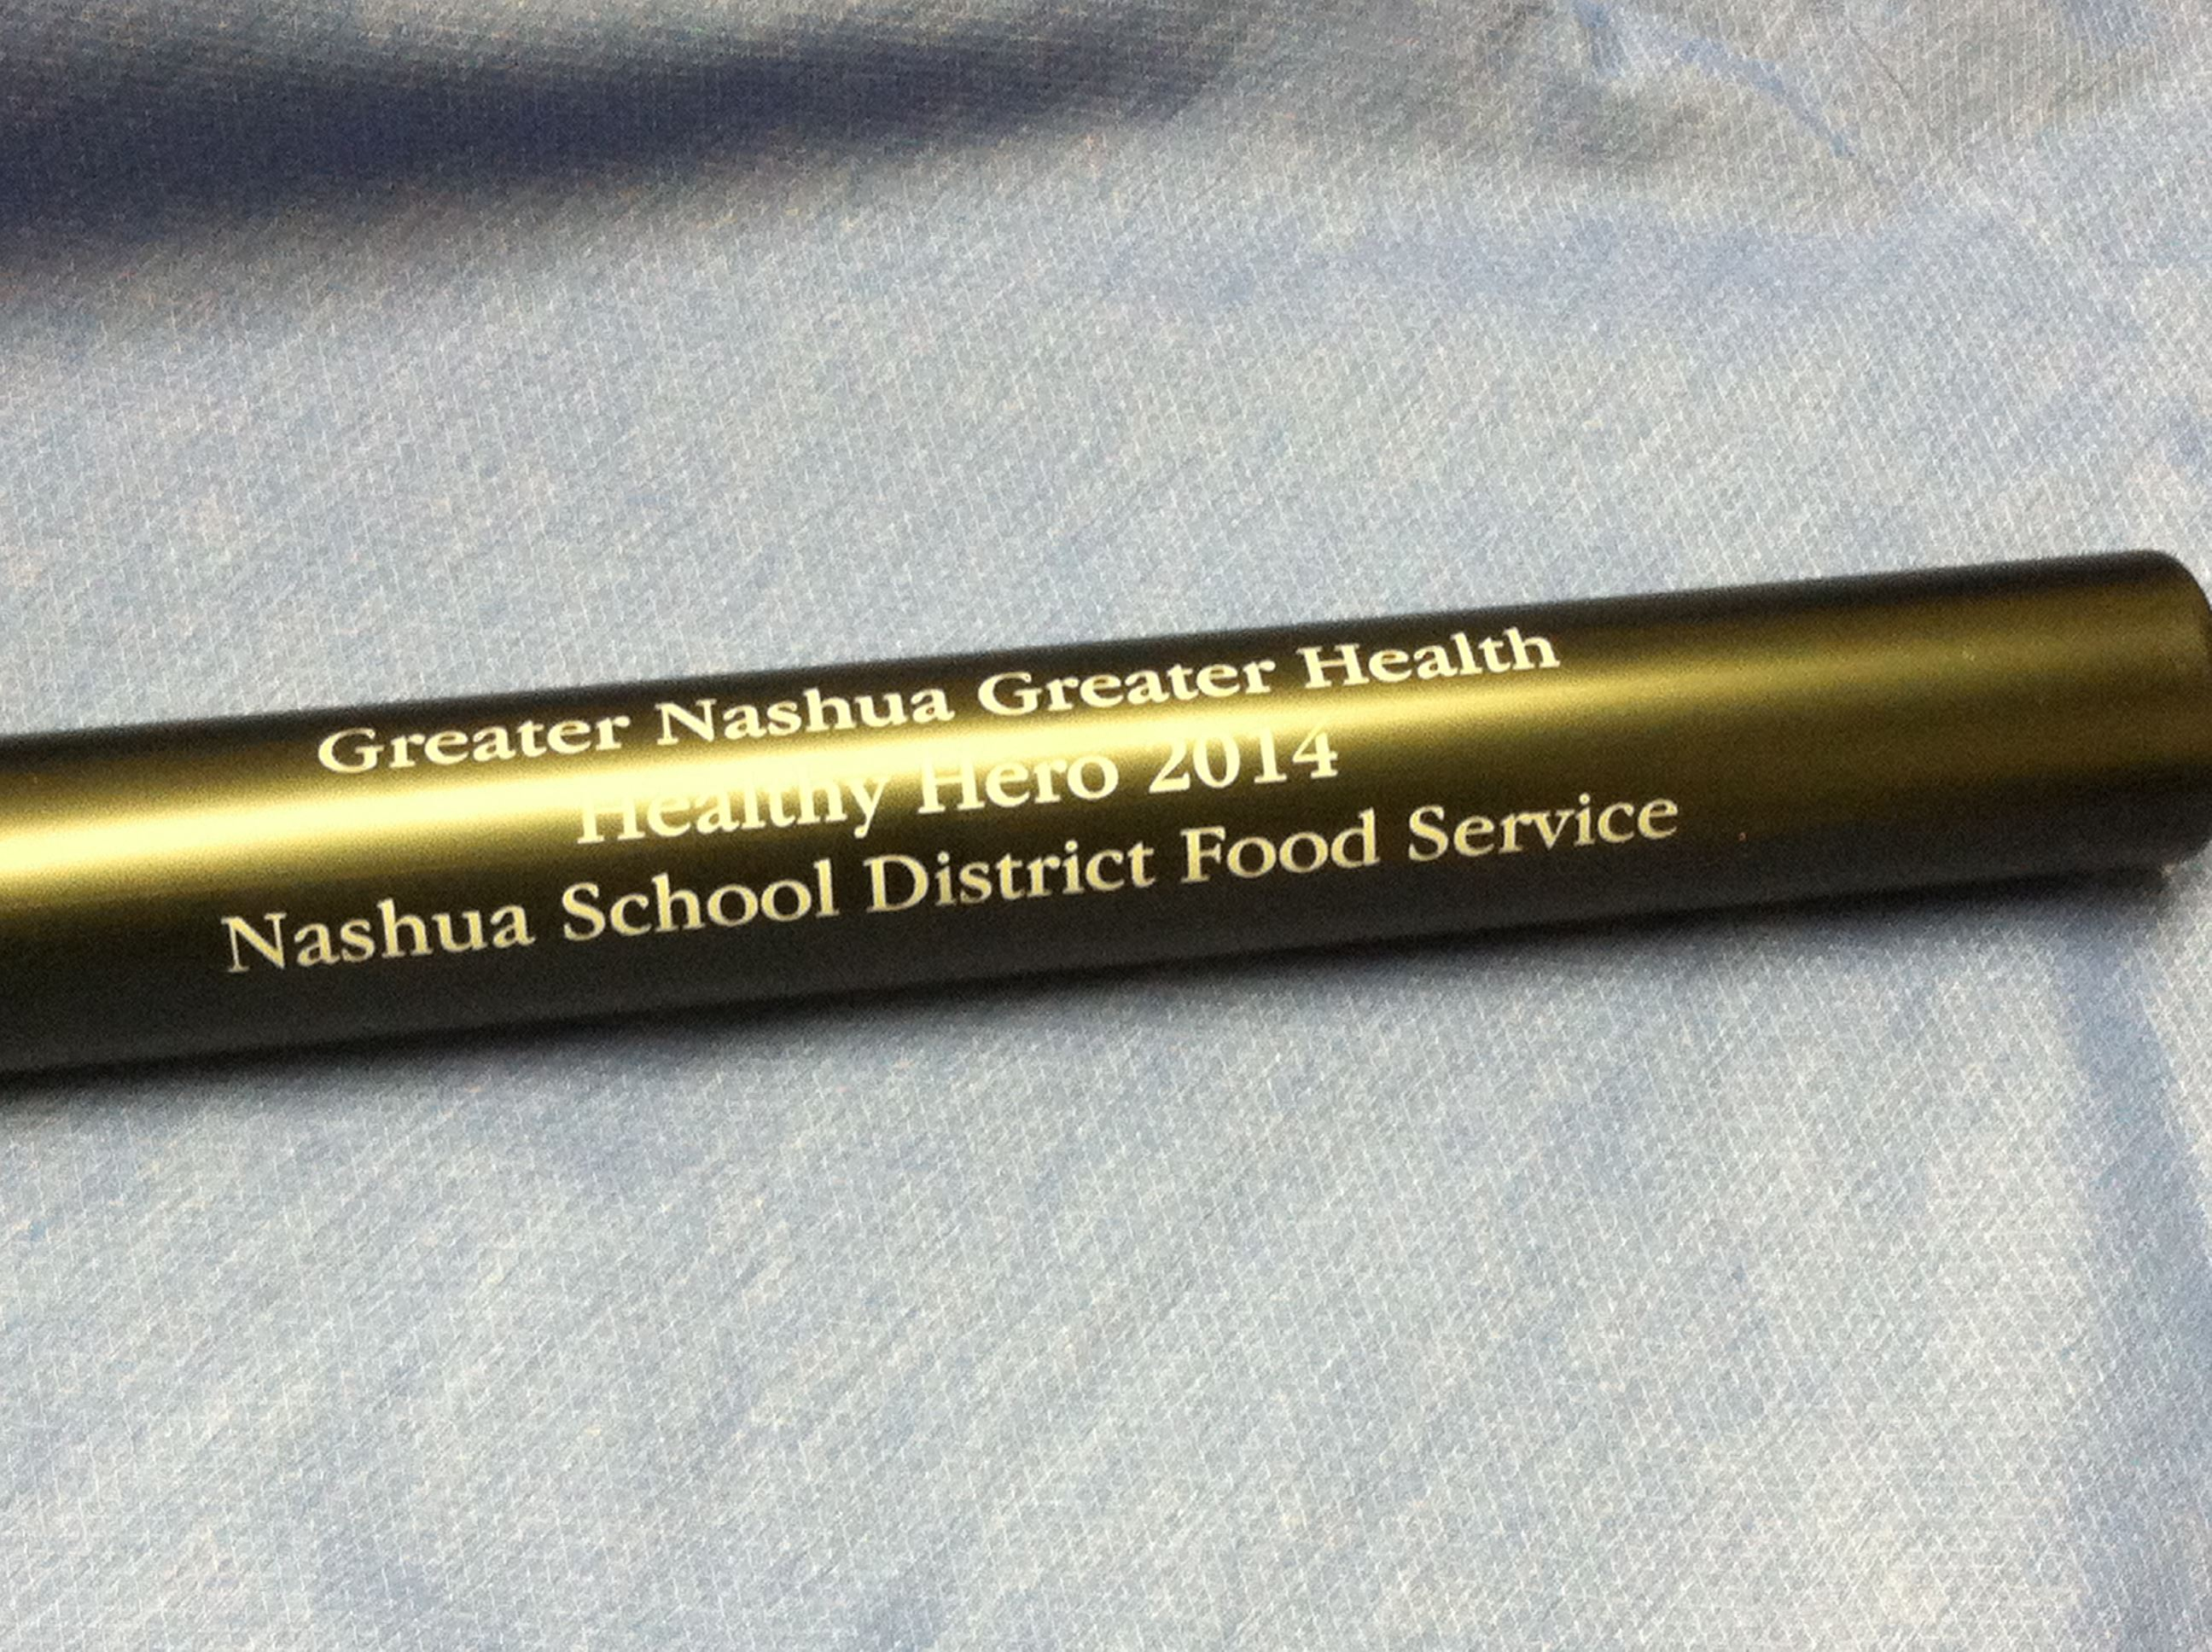 Greater Nashua Greater Health, Healthy Hero 2014, Nashua School District Food Service